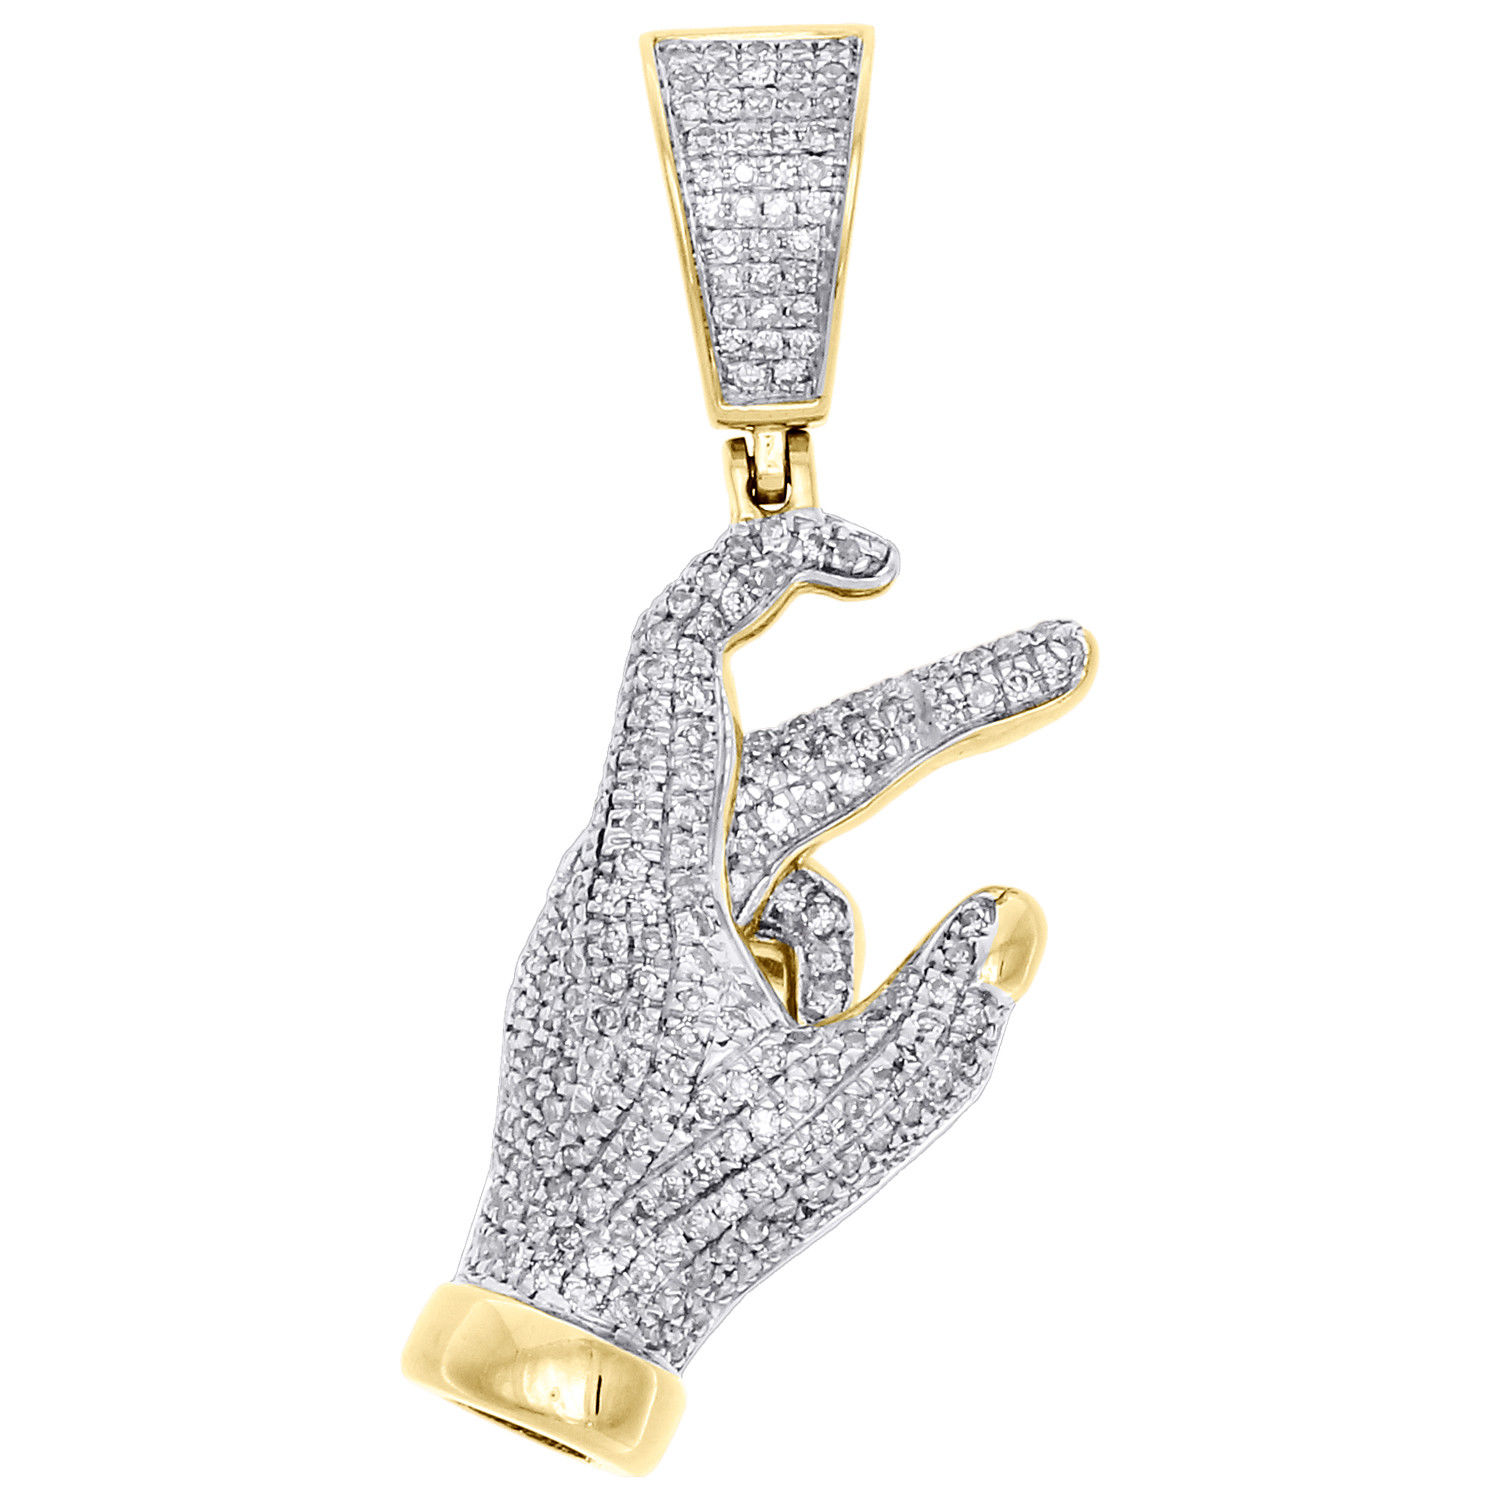 east side hand sign pendant